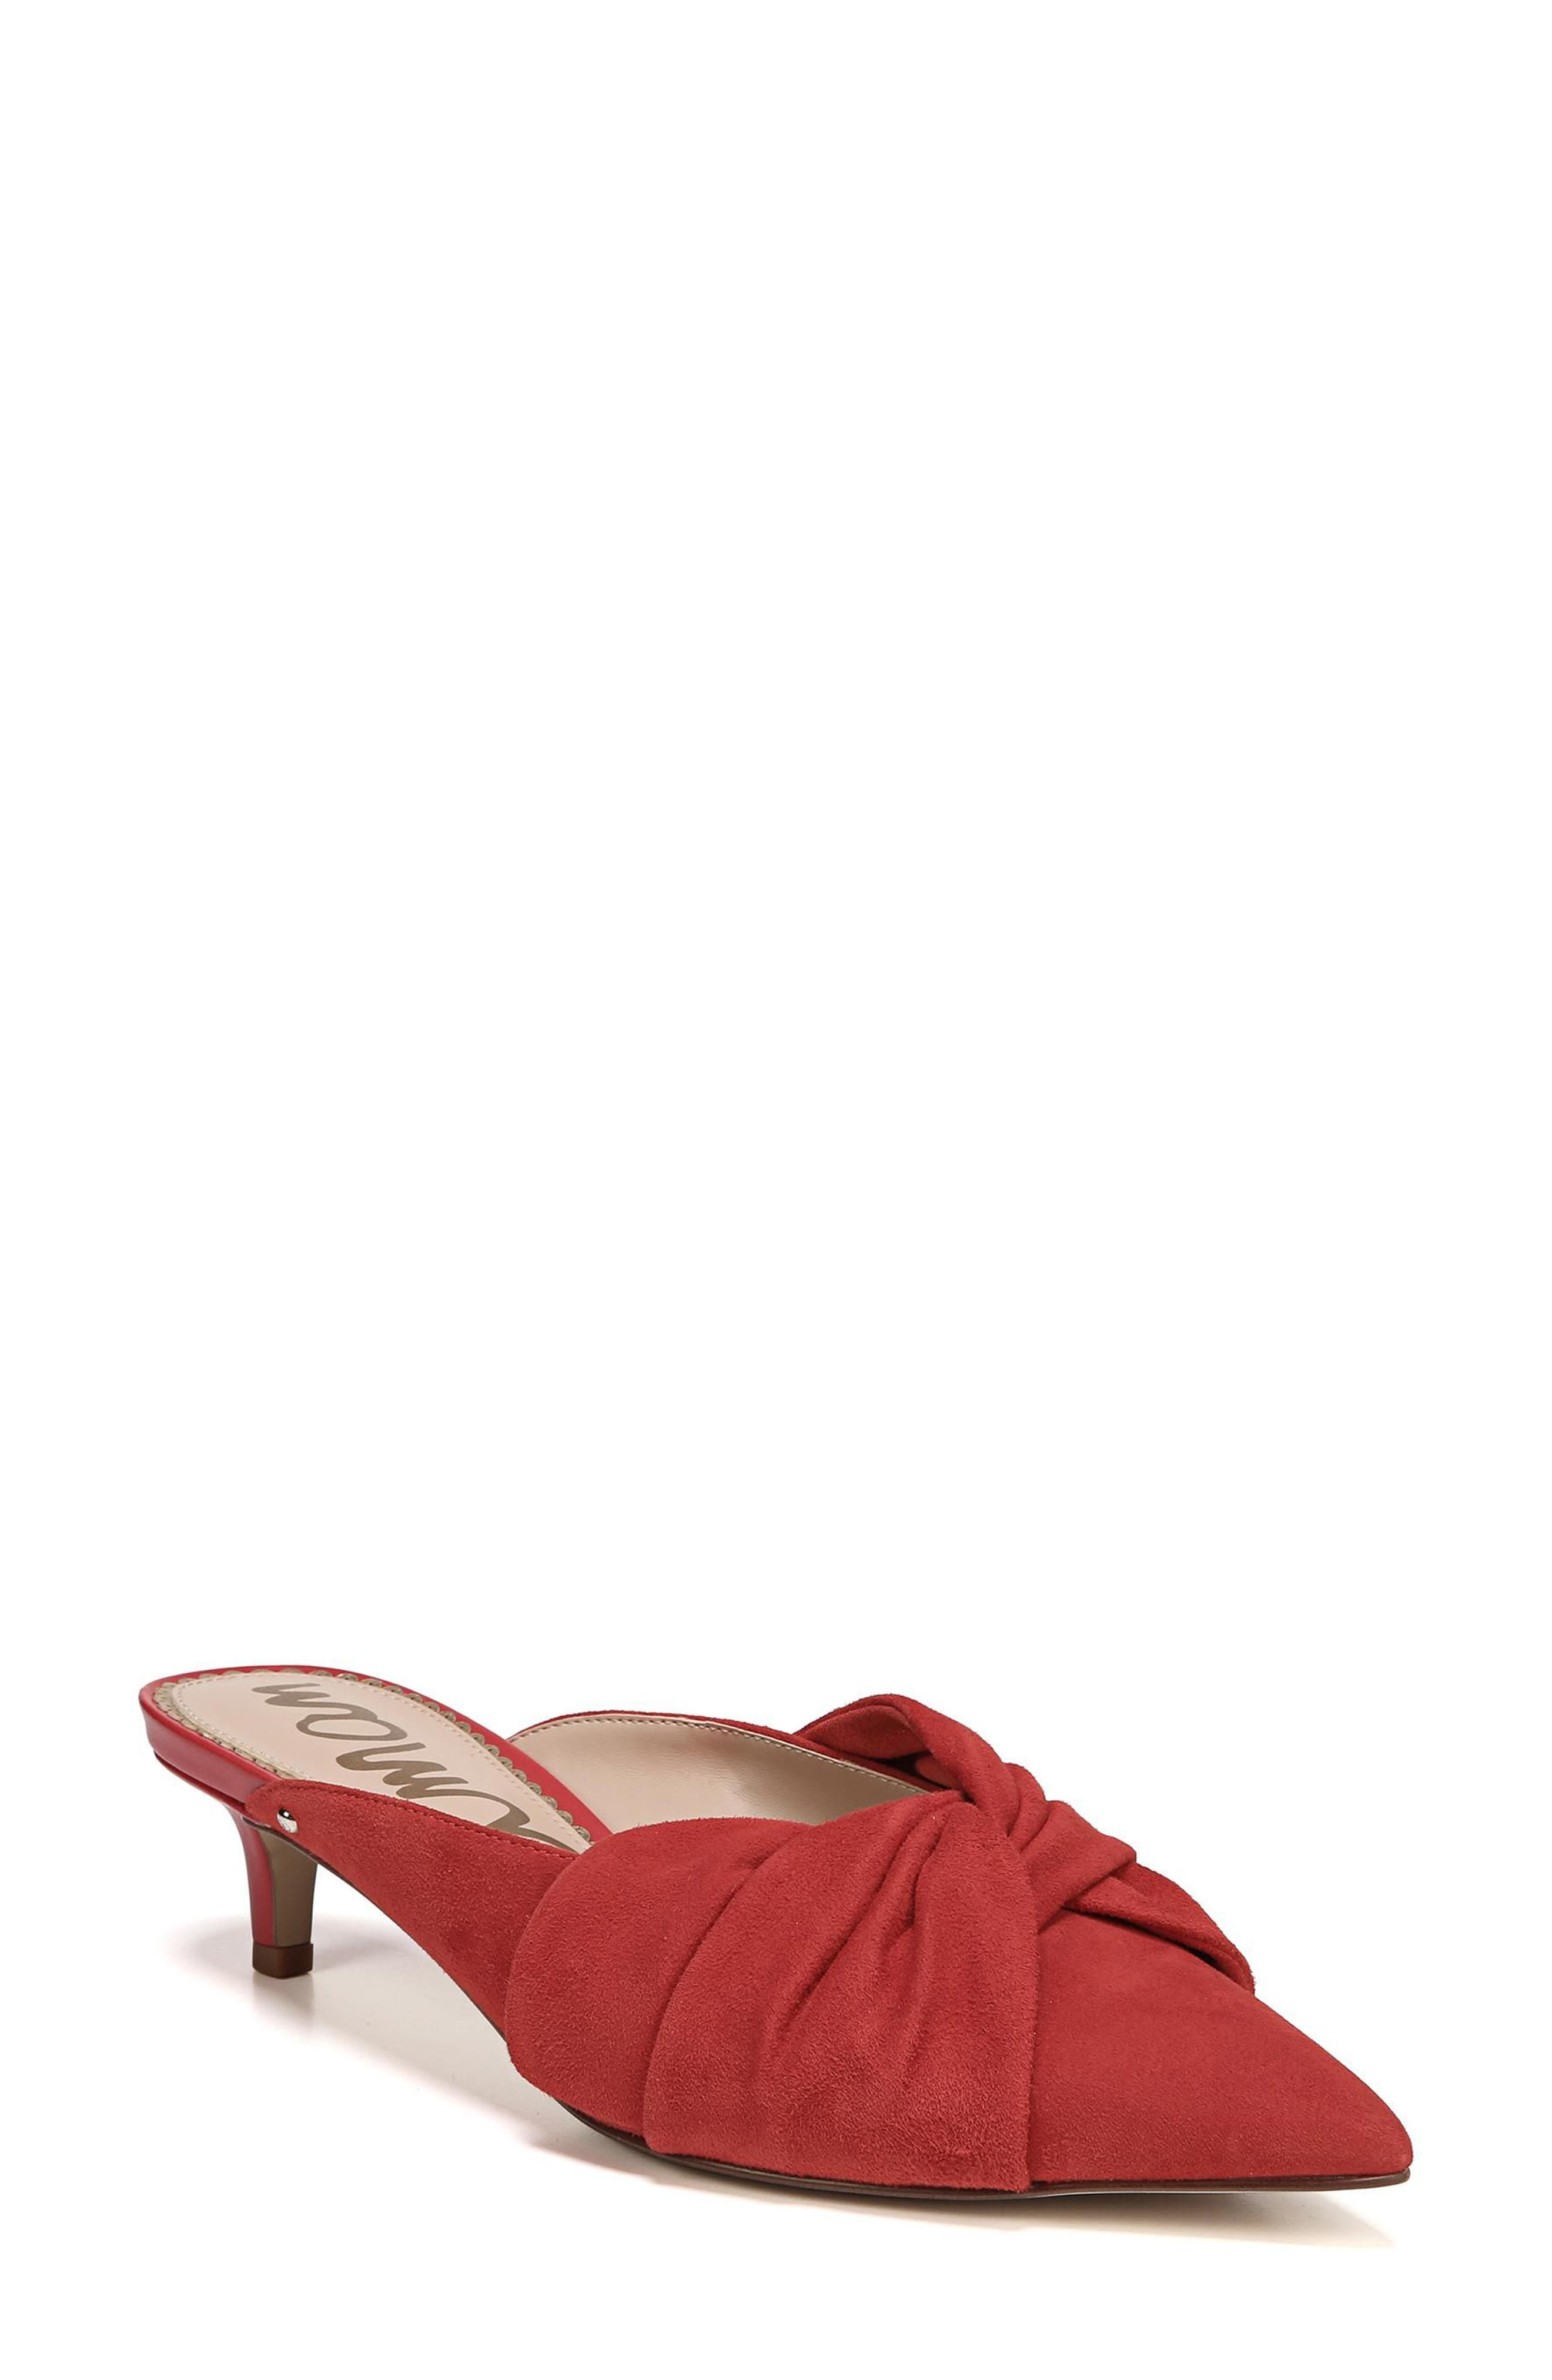 Laney Pointy Toe Mule,                             Main thumbnail 1, color,                             Candy Red Suede